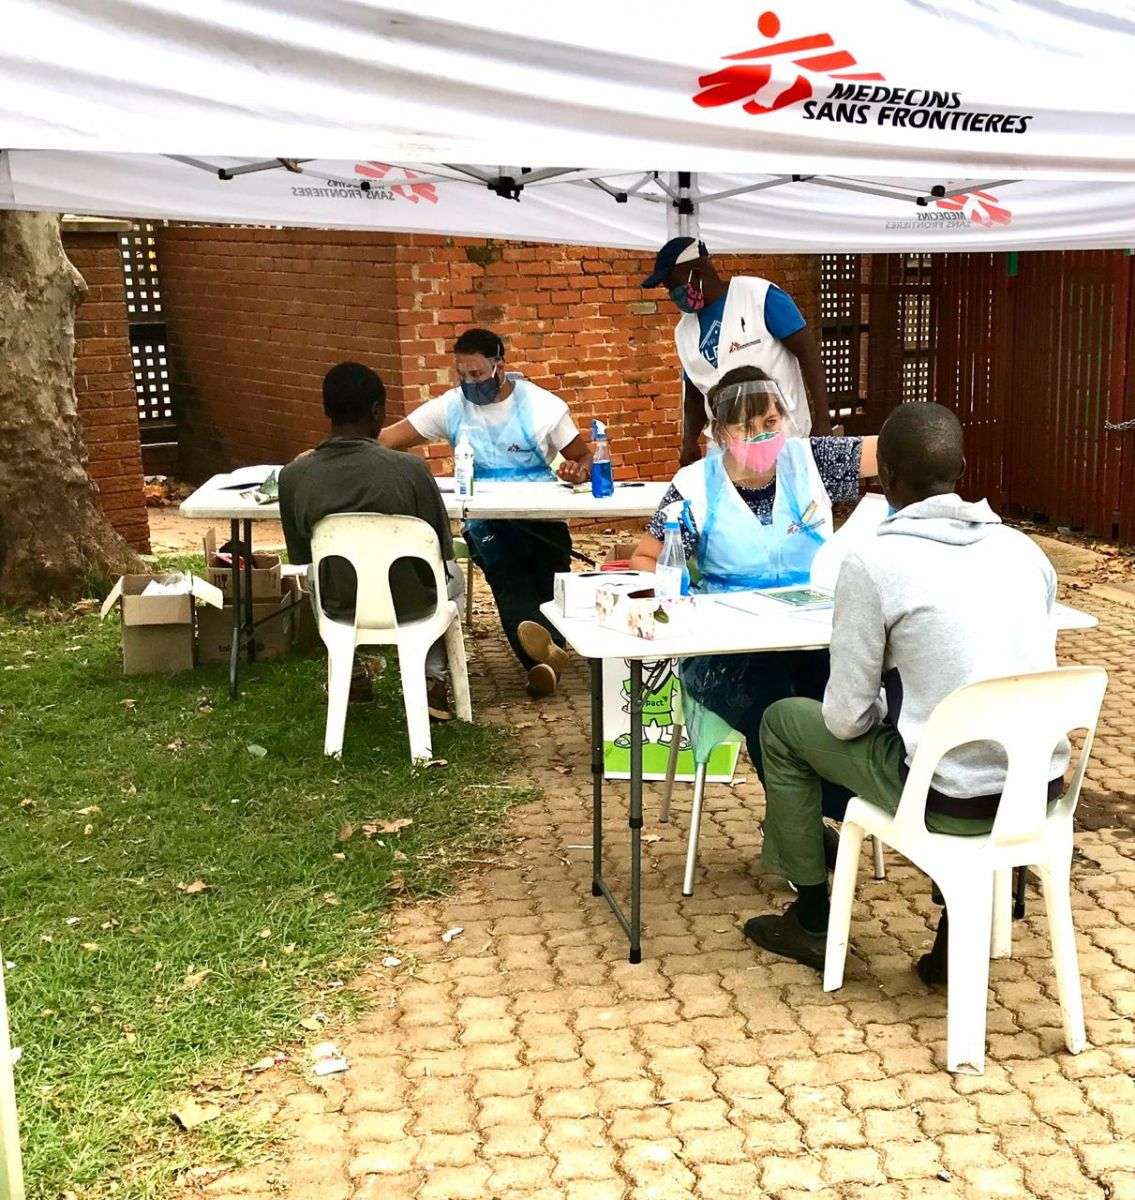 Joburg shelters for COVID